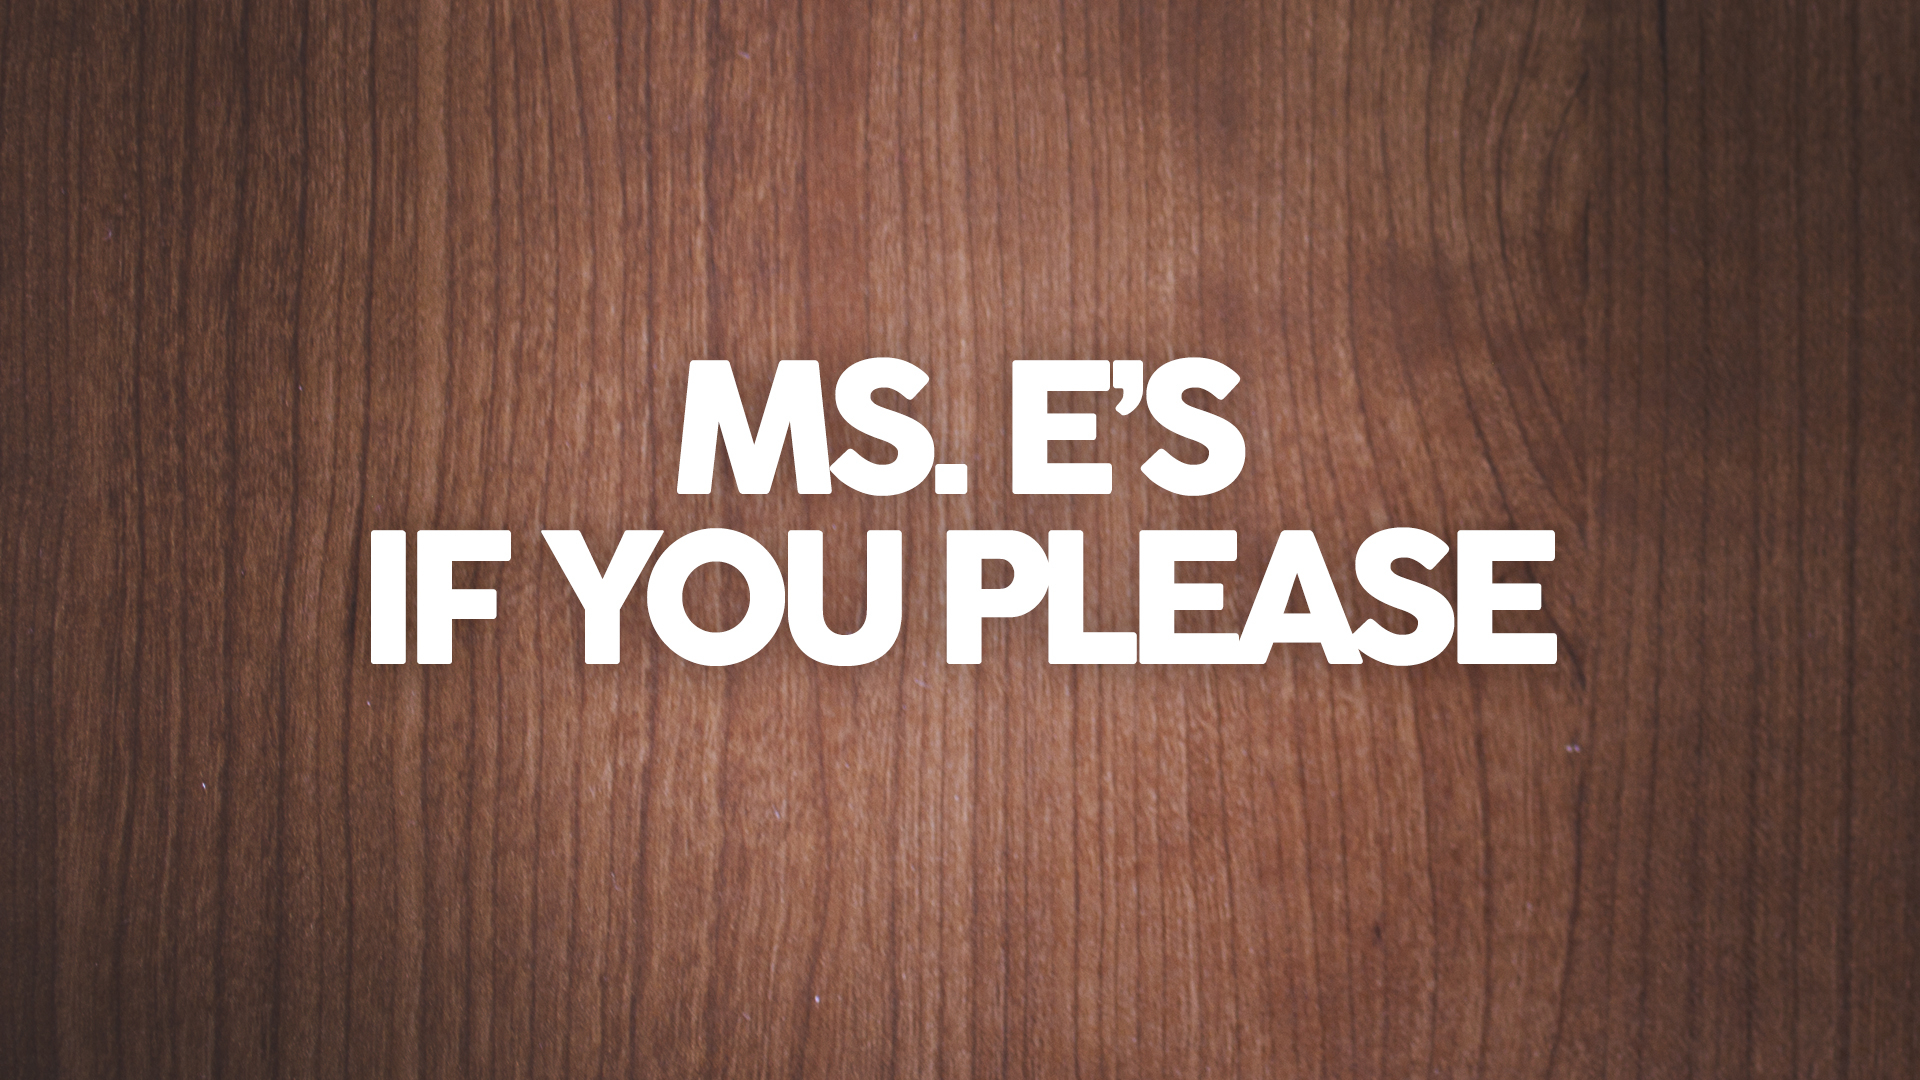 Ms E's Please from Dame's Chicken and Waffles